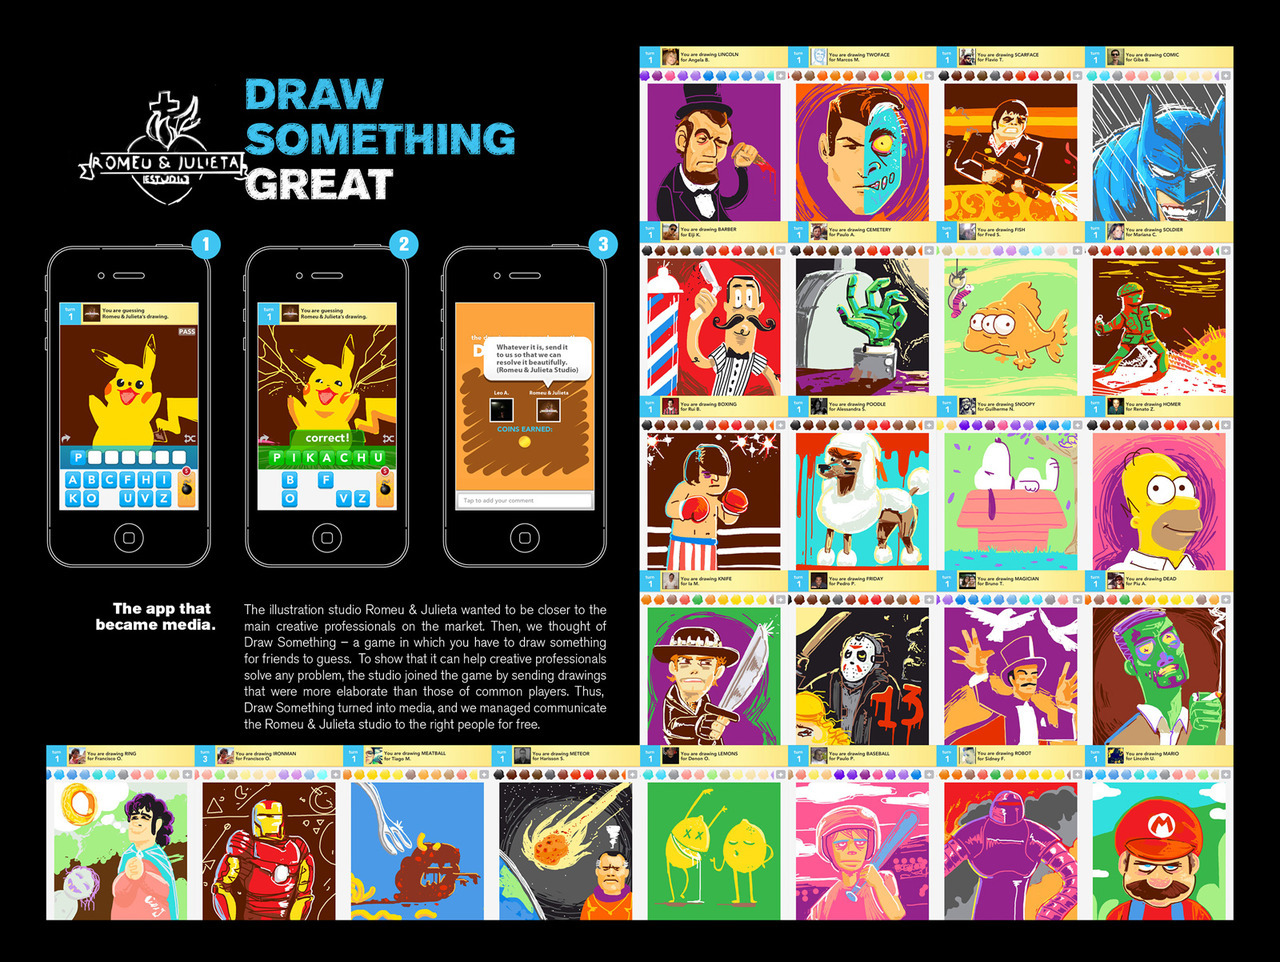 Romeu&Julieta Studio: Draw something great